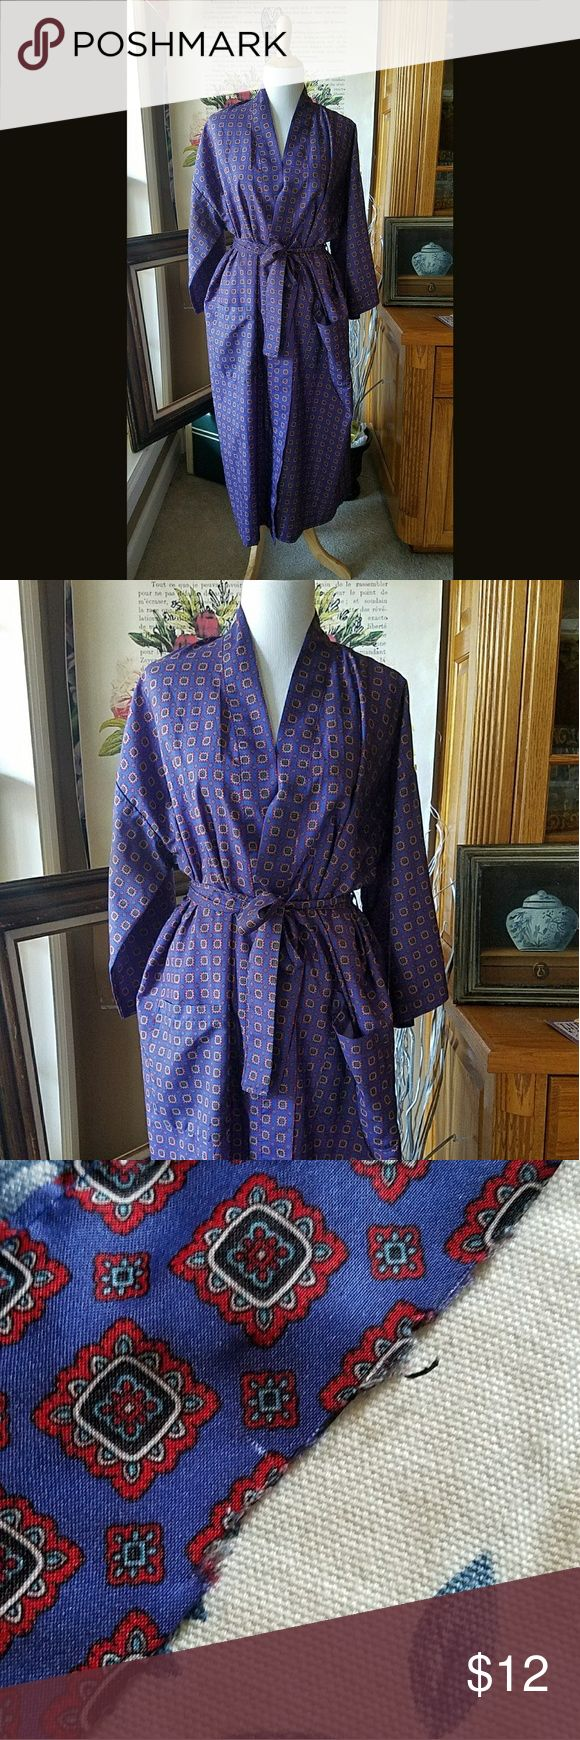 Pure Lounge! Bill Blass Robe One size, vibrant Bill Blass Robe from the late 80's. Poly robe with front pockets and tie sash. The sash has a minor flaw, once it's around the waist it isn't noticeable. Price has been adjusted. This robe is also unisex. Bill Blass Intimates & Sleepwear Robes